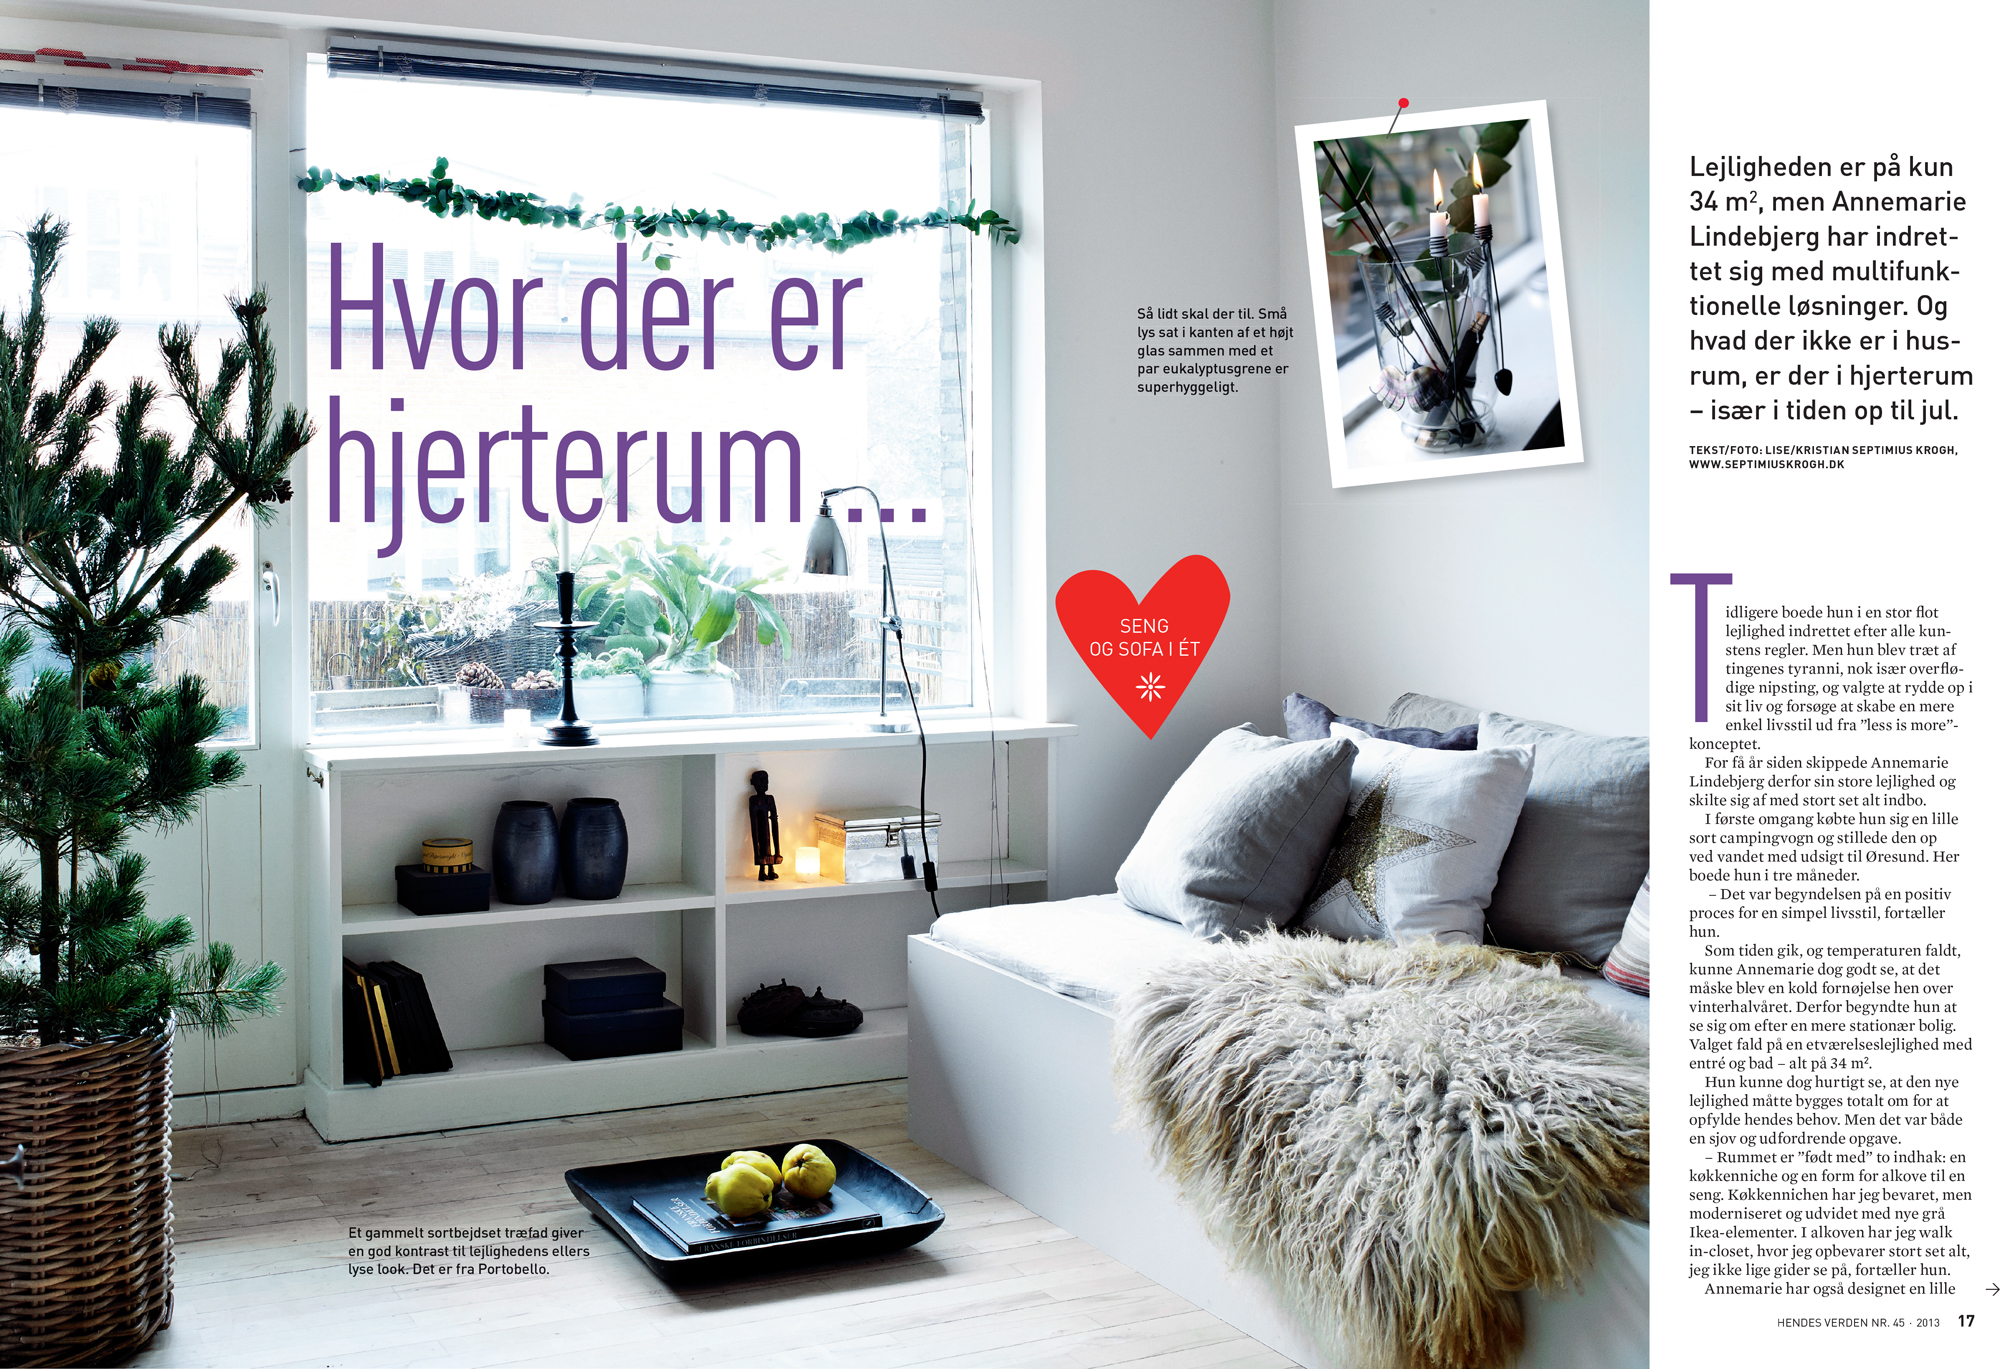 Article image from HENDES VERDEN Magazine